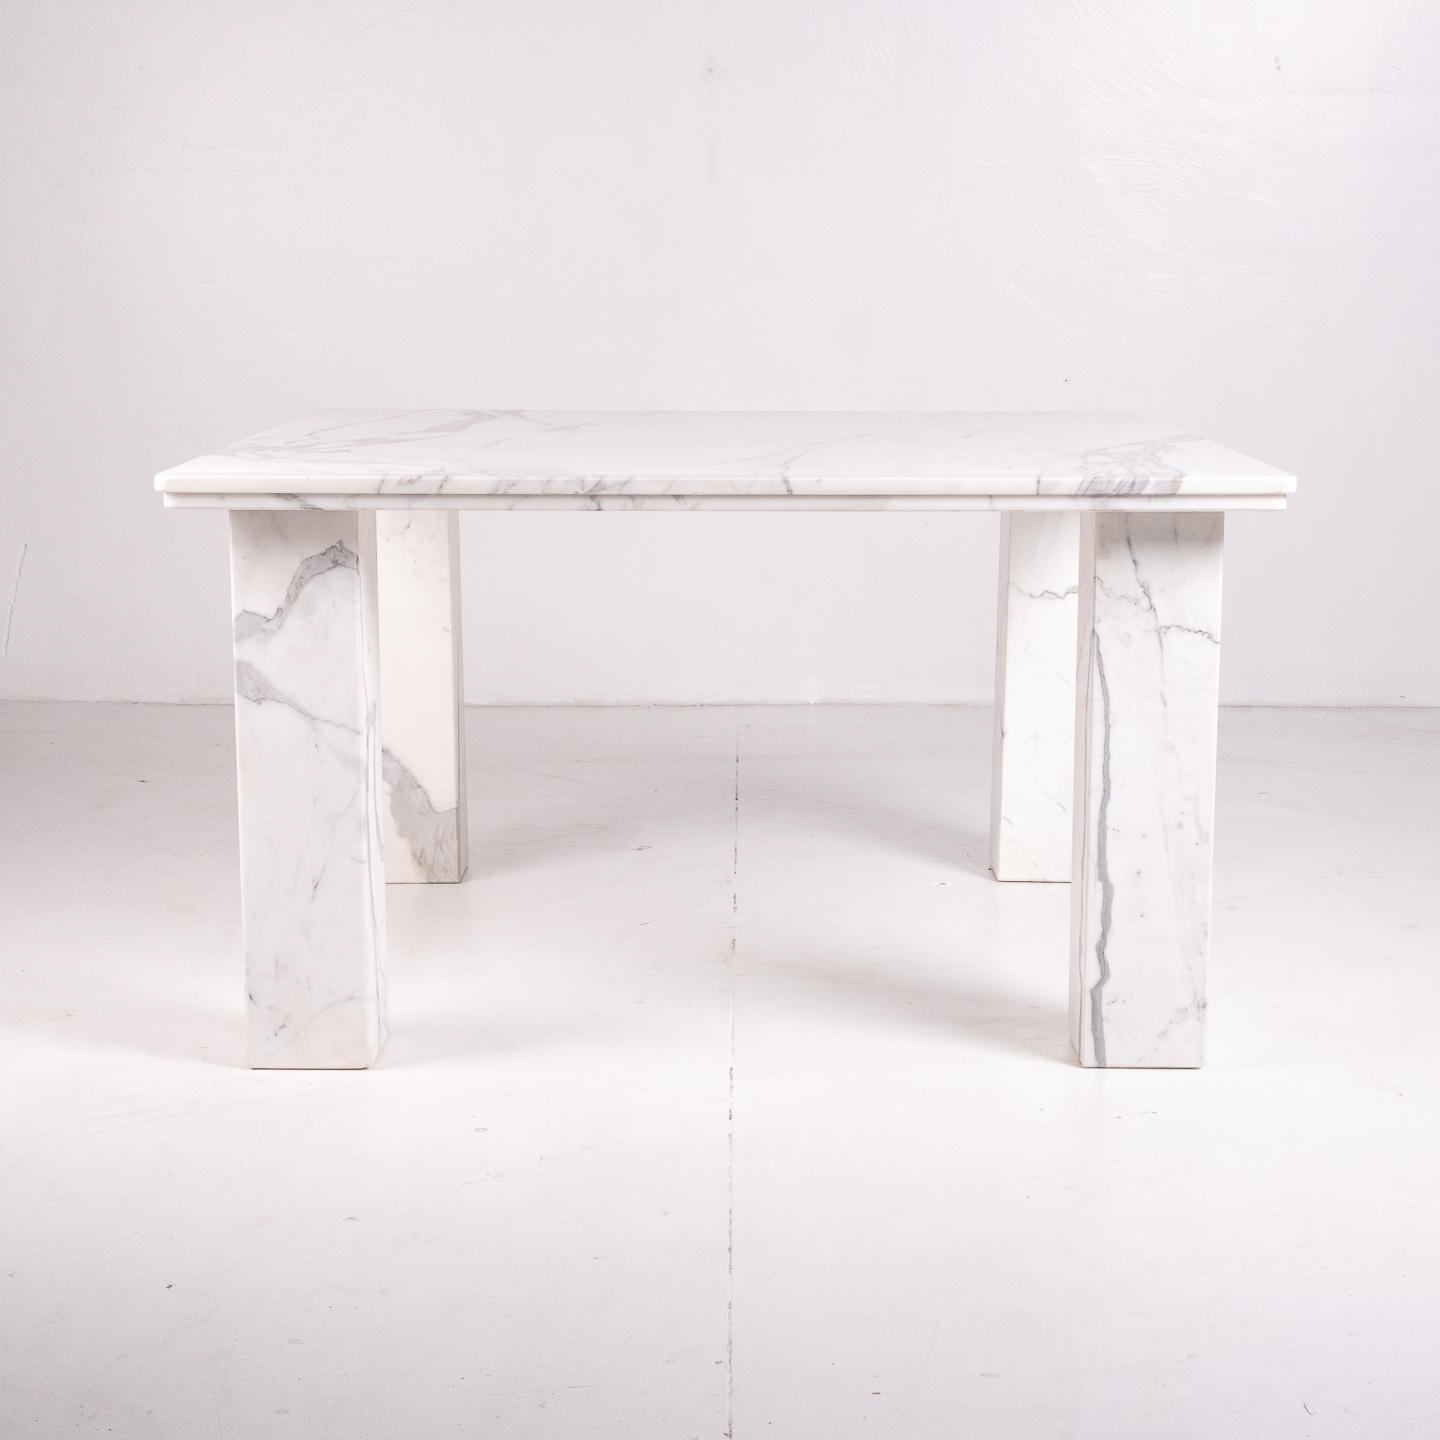 Square Dining Table In White Marble With Solid Square Legs, 1960s, The Netherlands 21